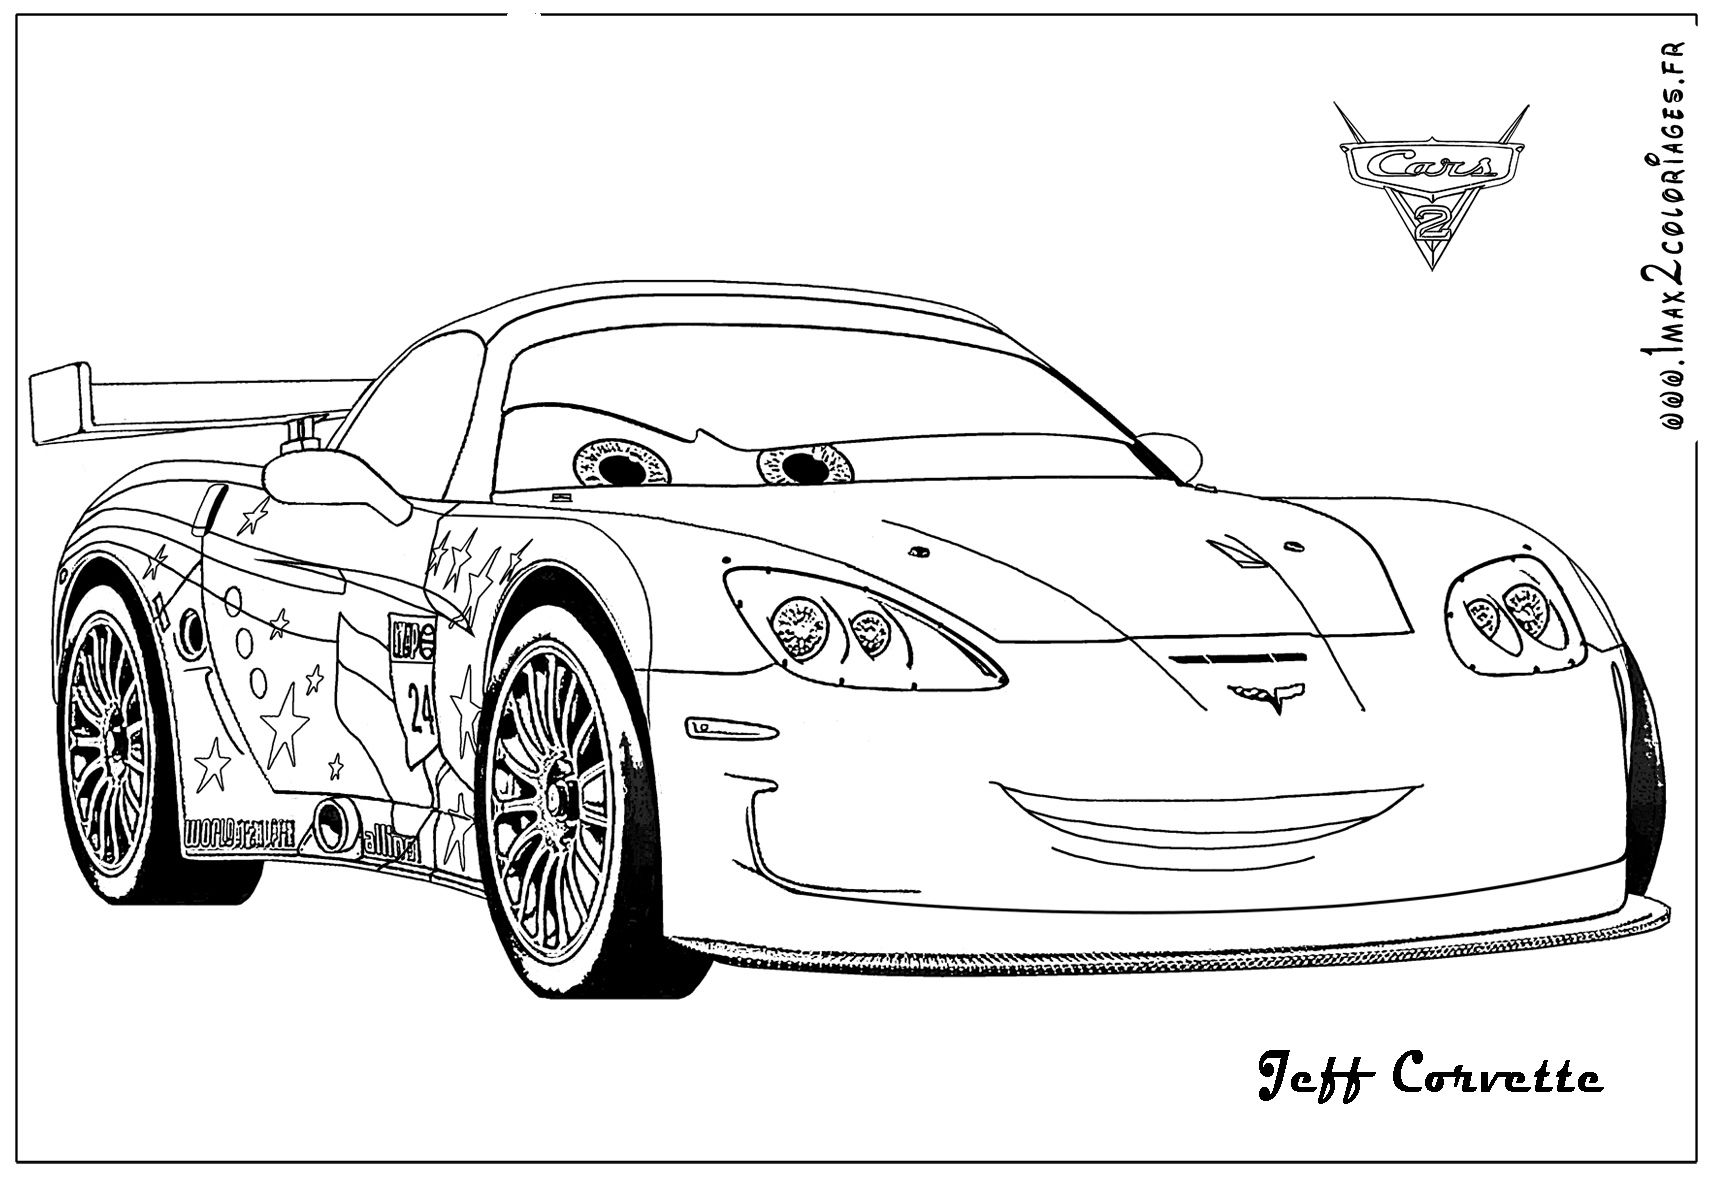 Cars 2 Jeff Corvette Coloring Page